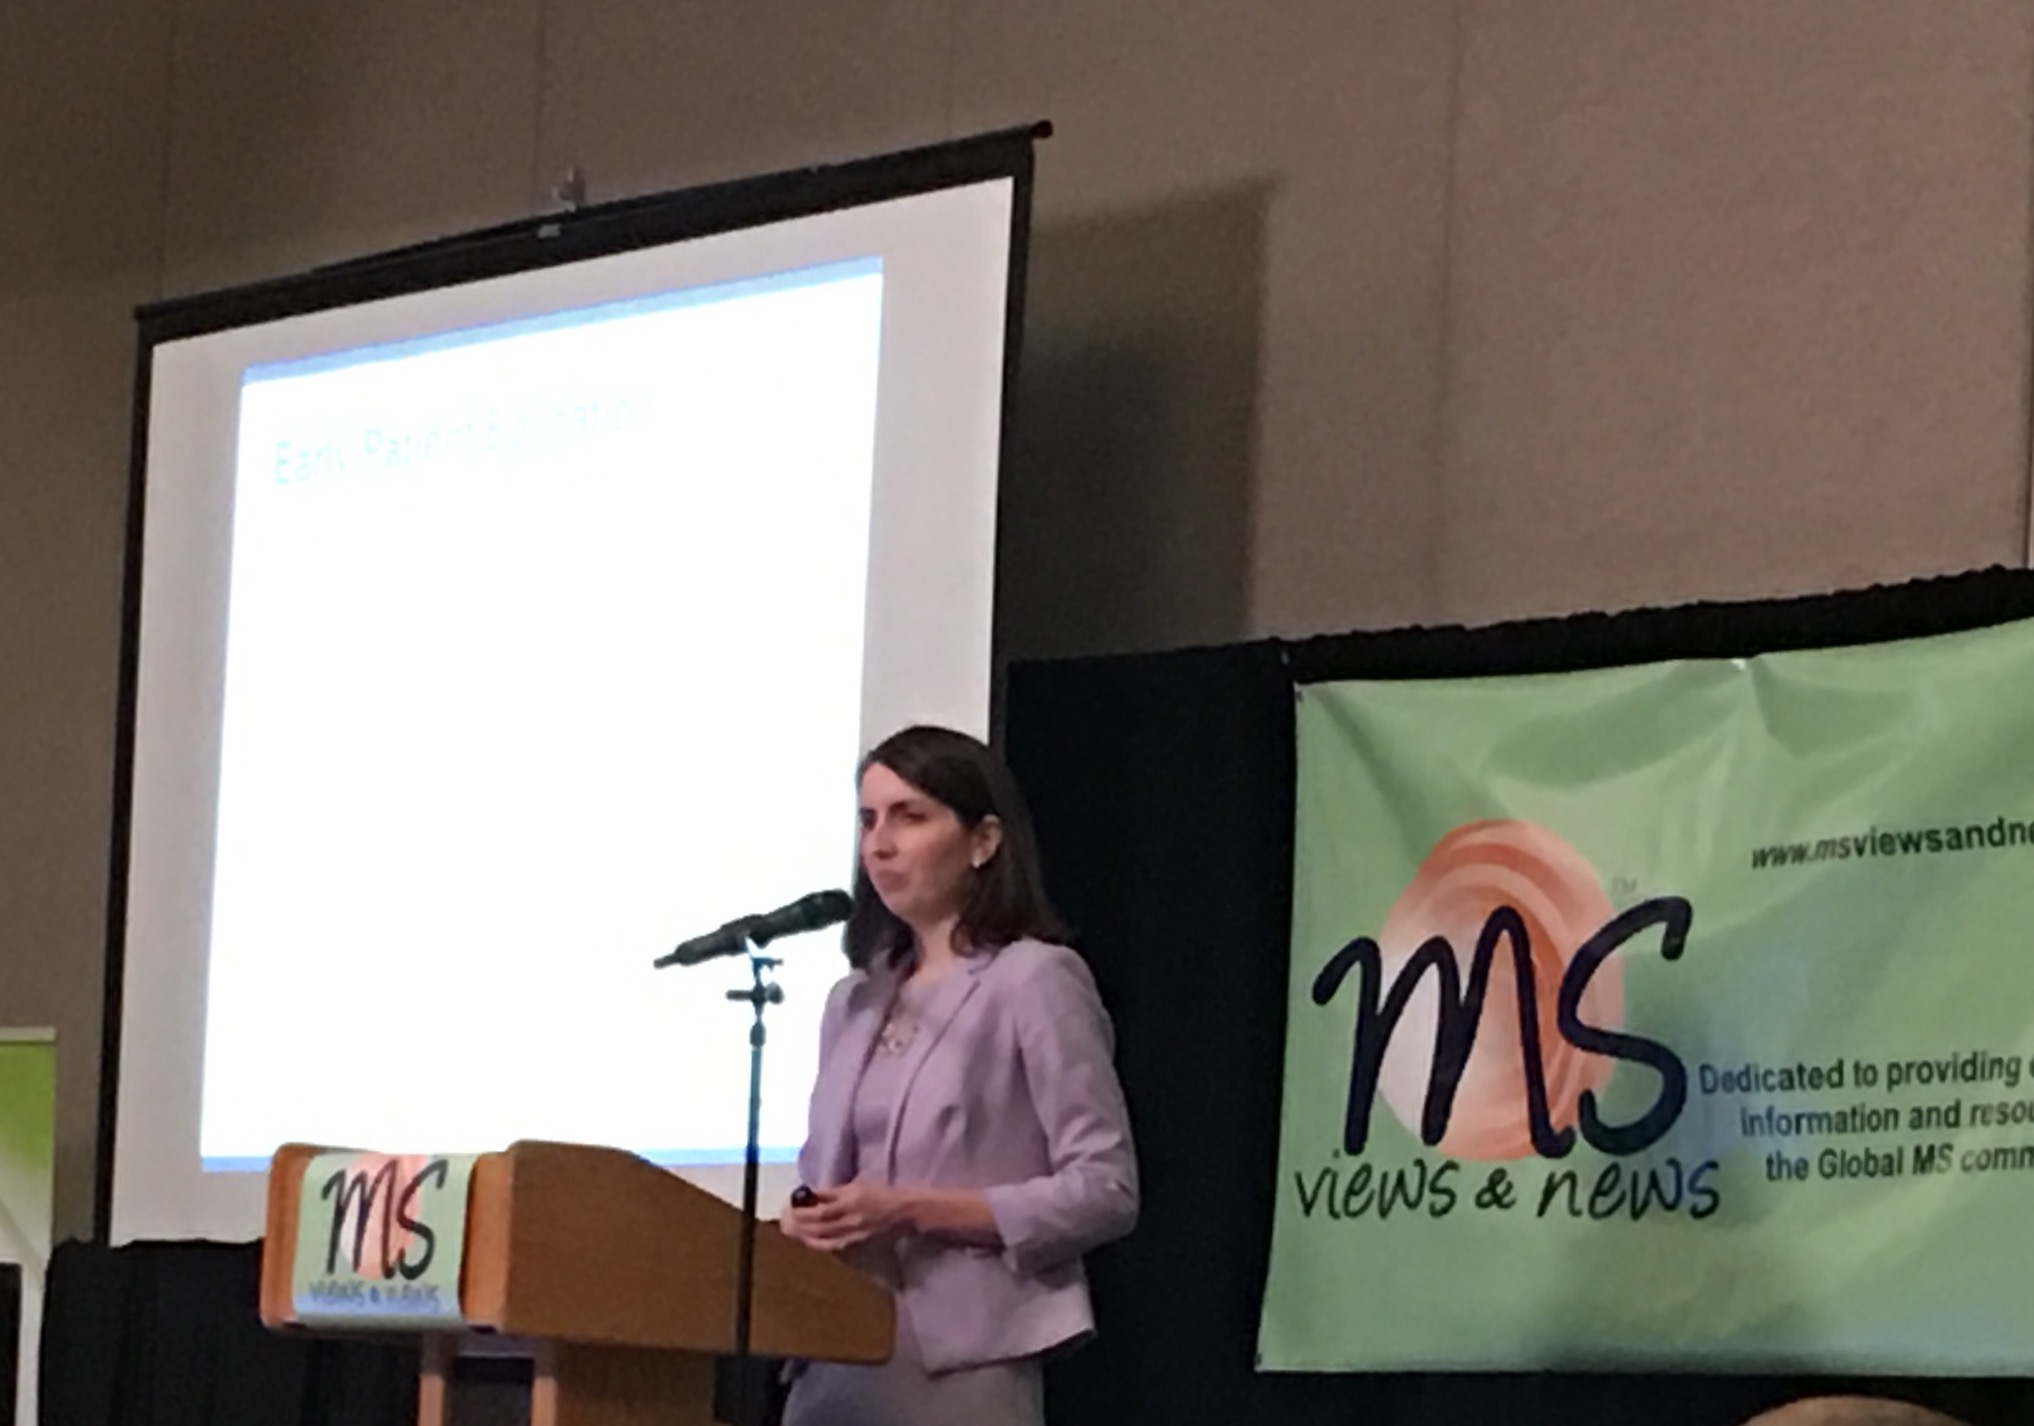 Dr. Jacqueline Nicholas speaking on Women's Issues in MS